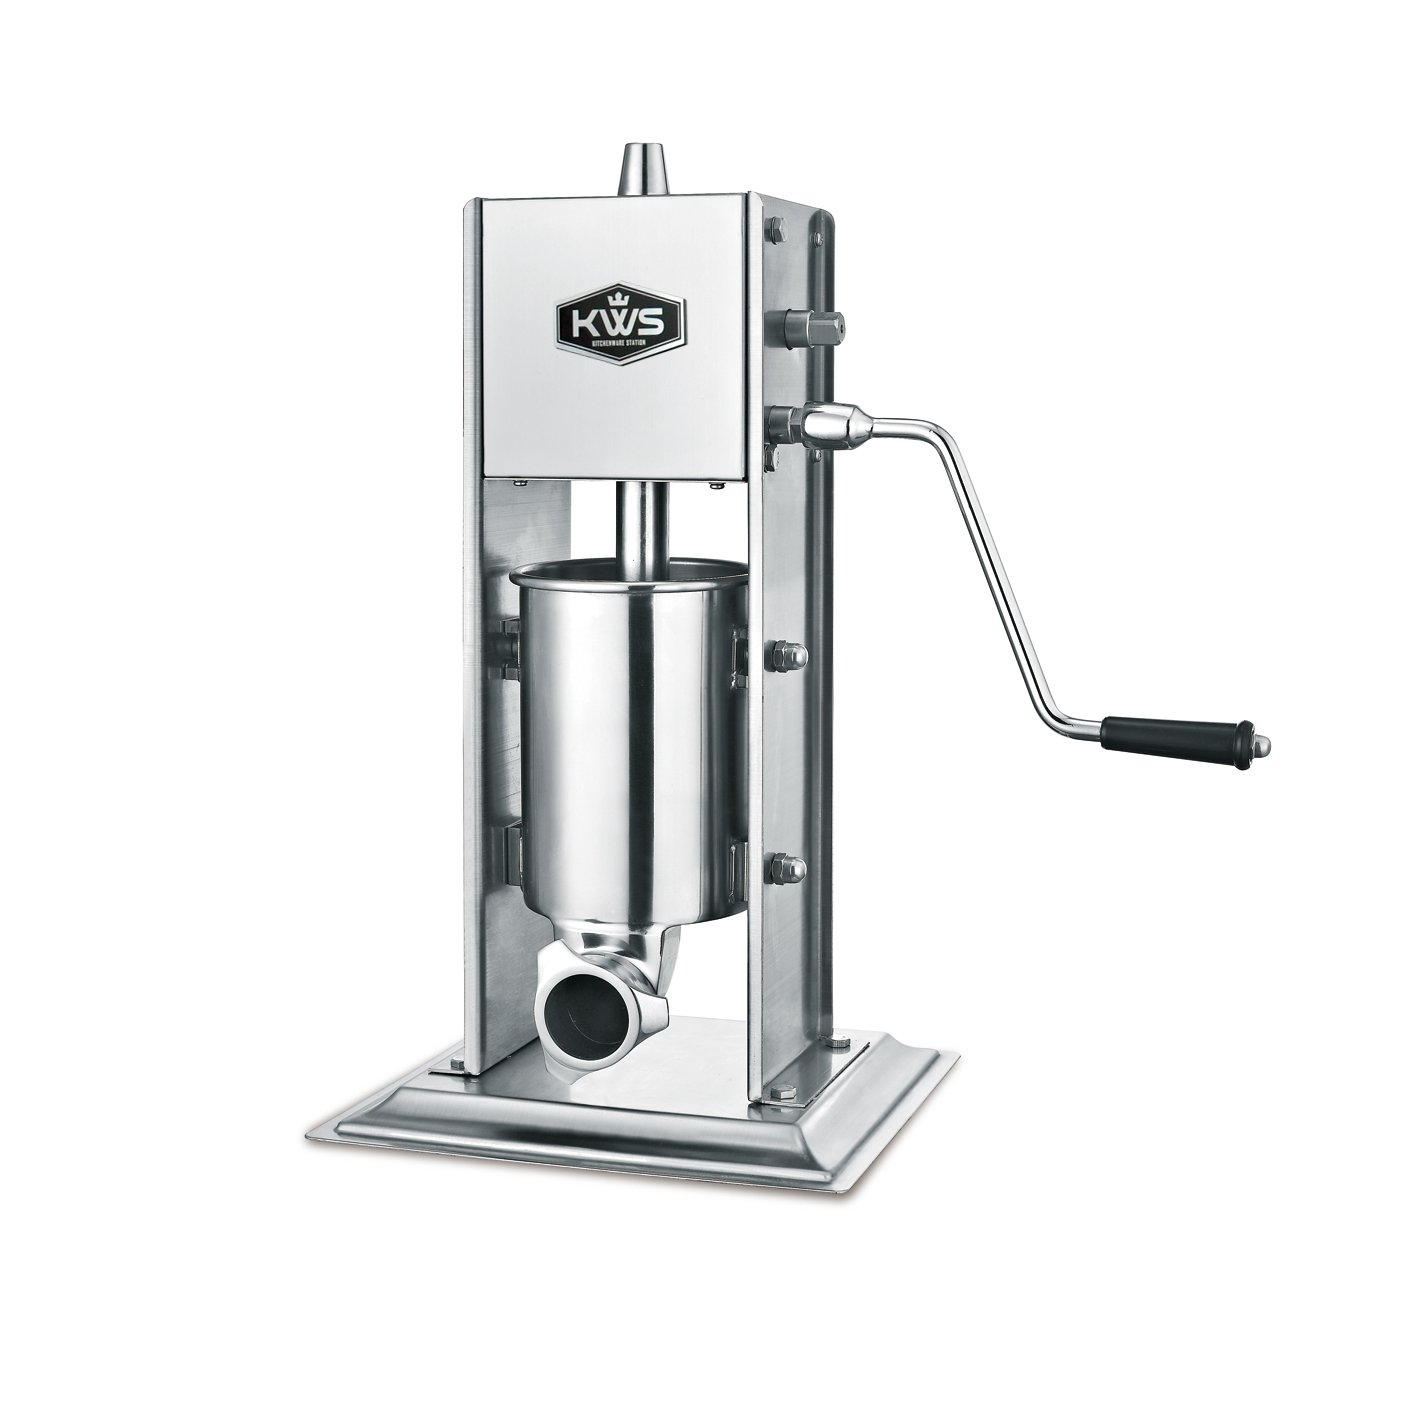 KWS Professional Commercial Sausage maker Sausage Stuffer ST-3L/ 6.6LB heavy duty gear system by KitchenWare Station